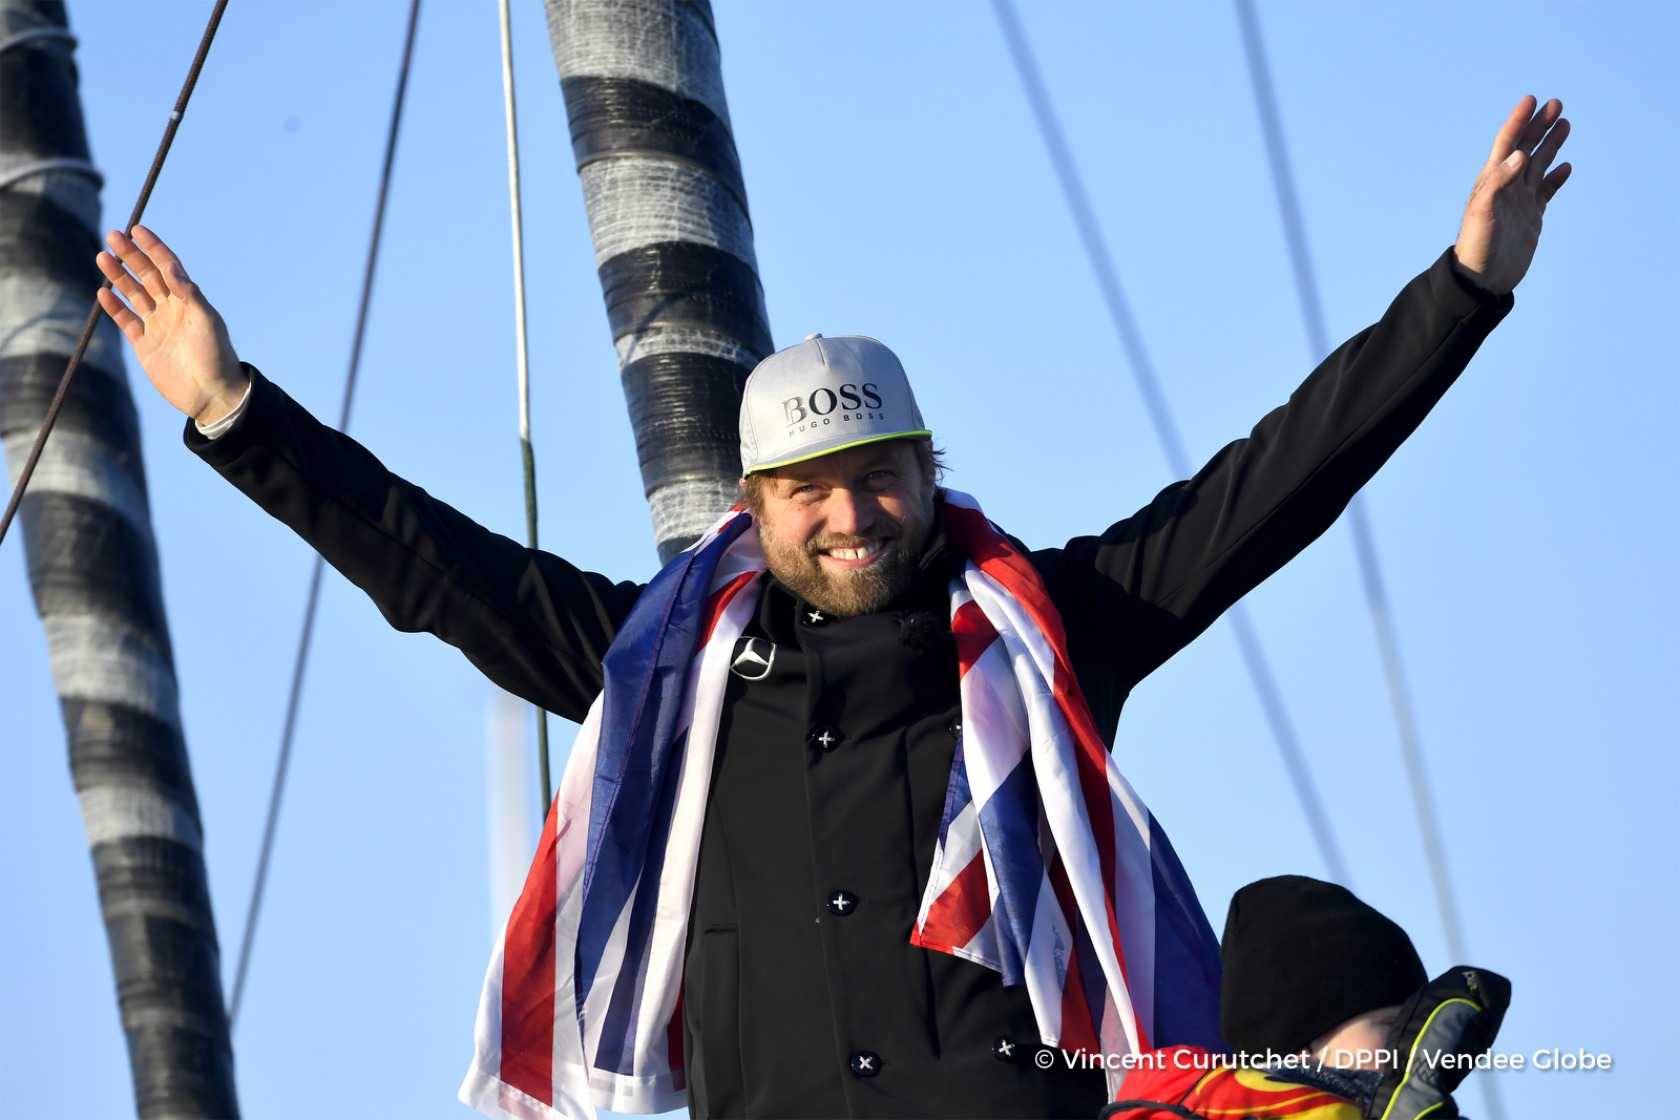 Finish arrival of Alex Thomson (GBR), skipper Hugo Boss, 2nd place of the sailing circumnavigation solo race Vendee Globe, in Les Sables d'Olonne, France, on January 20th, 2017 - Photo Vincent Curutchet / DPPI / Vendee GlobeArrivée de Alex Thomson (GBR)